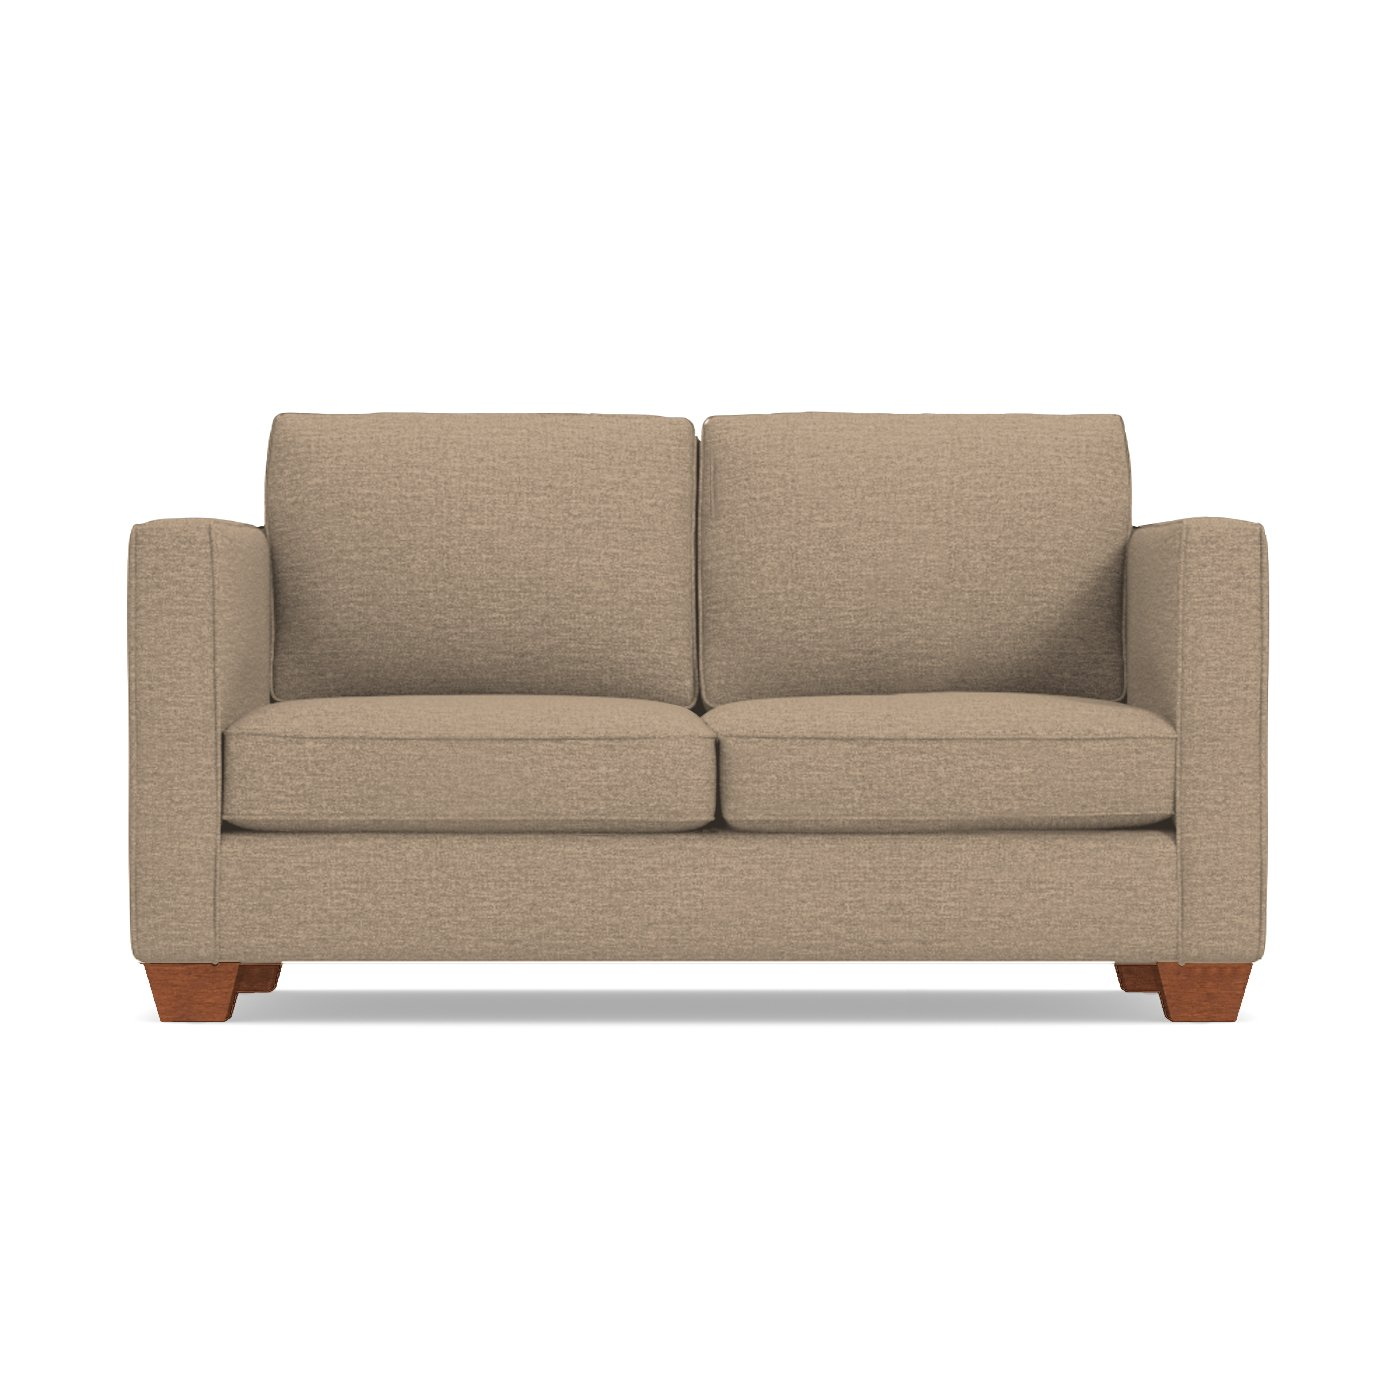 Catalina Apartment Size Sofa - Choice of Fabrics - Apt2B